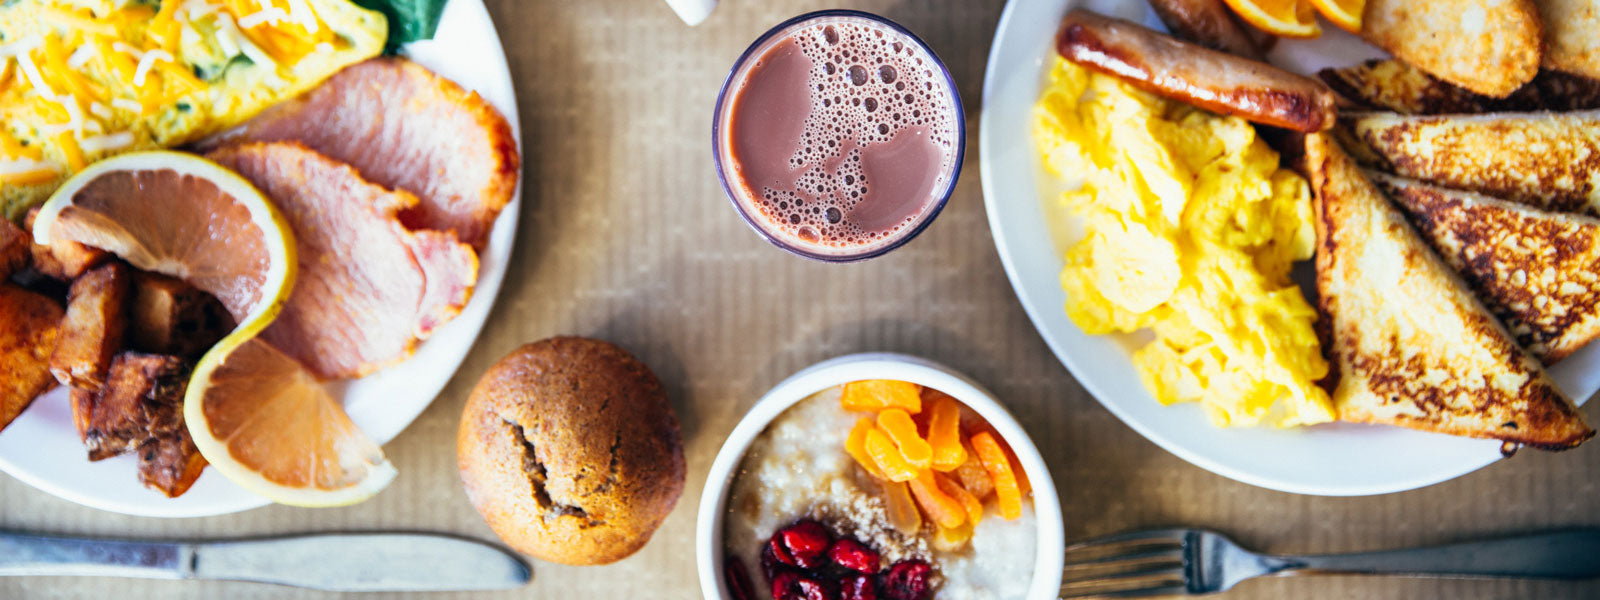 Best Foods To Eat For Breakfast Before Race Day